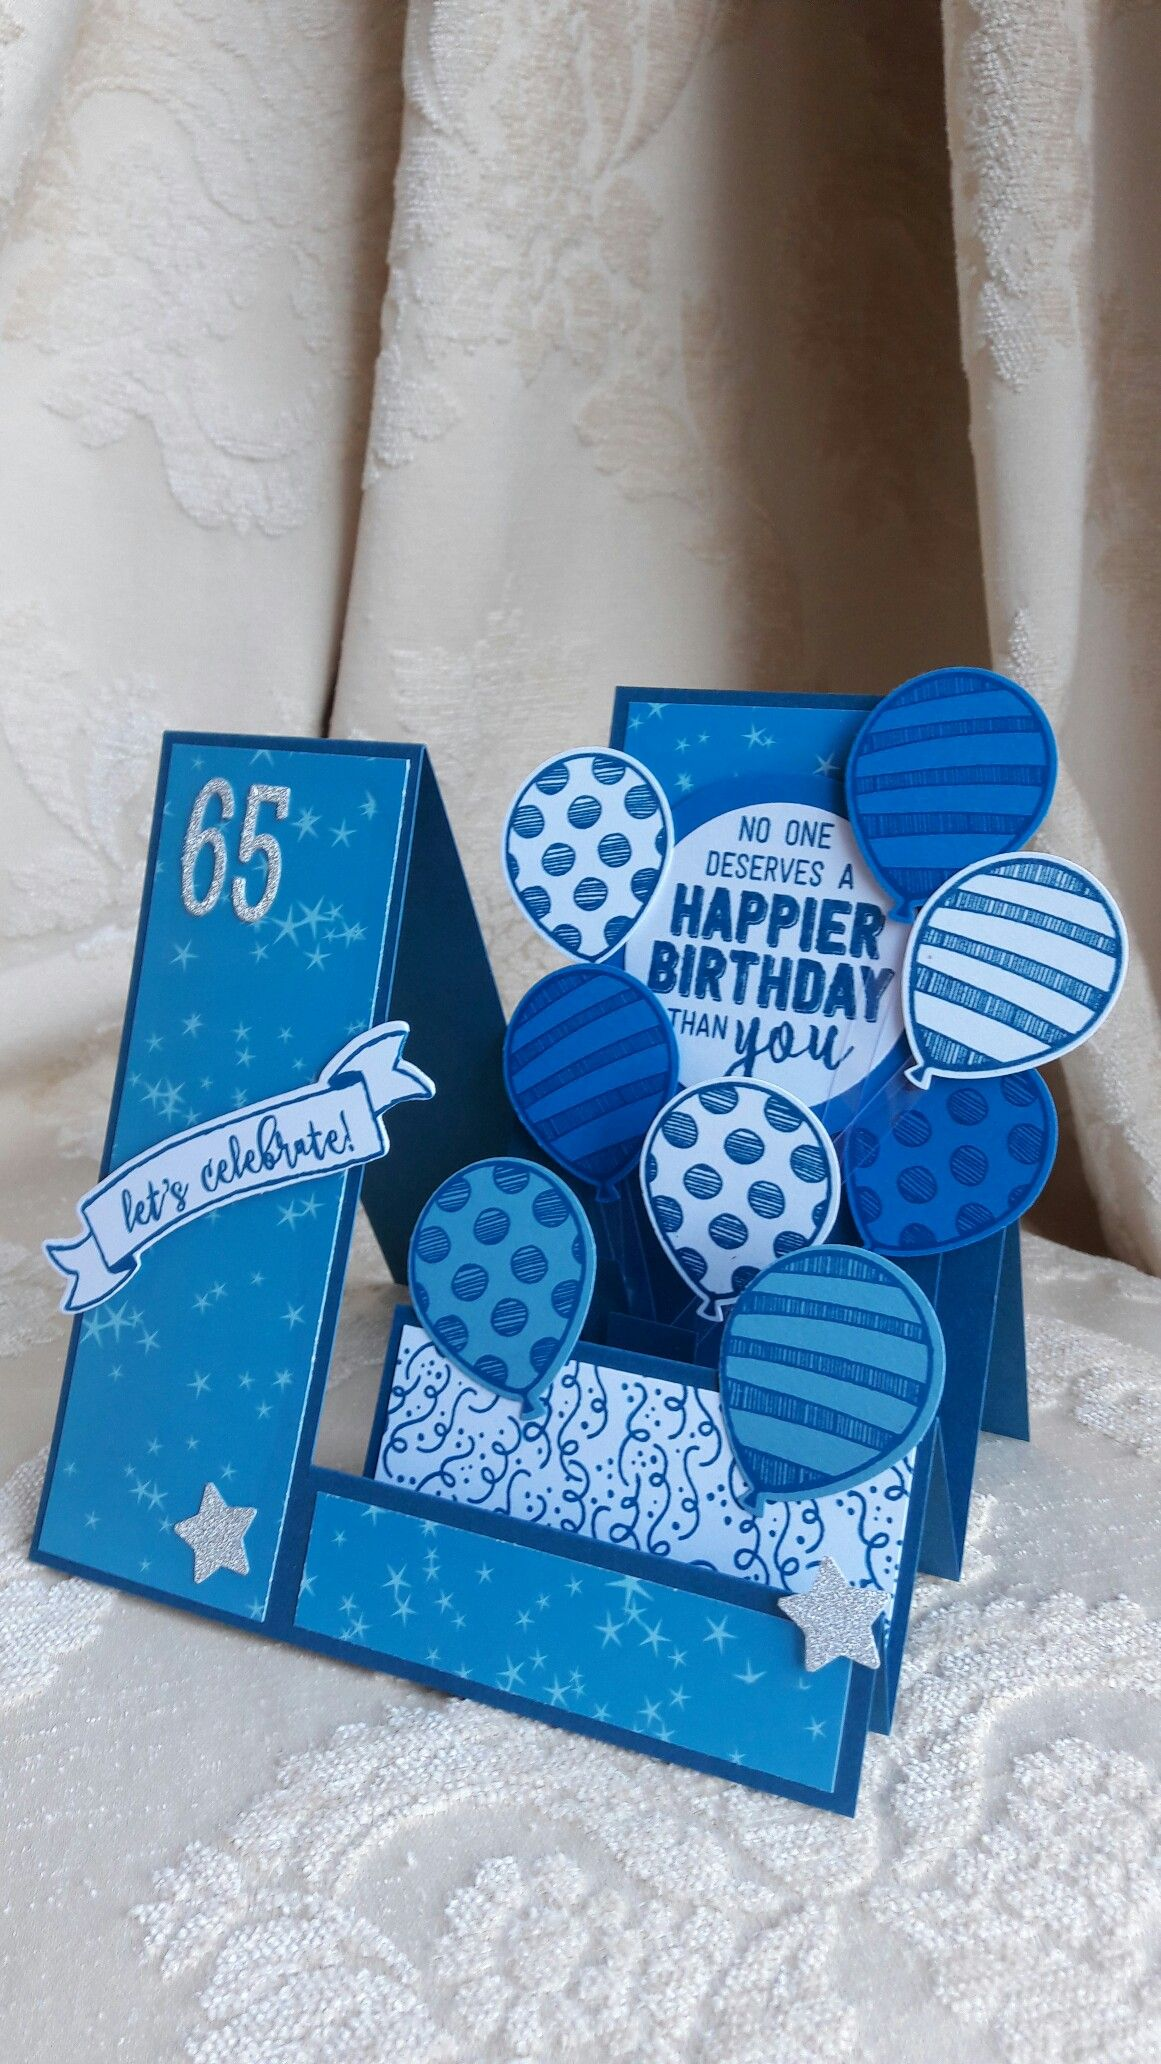 Balloon Adventures Side Step Card Male 65th Birthday